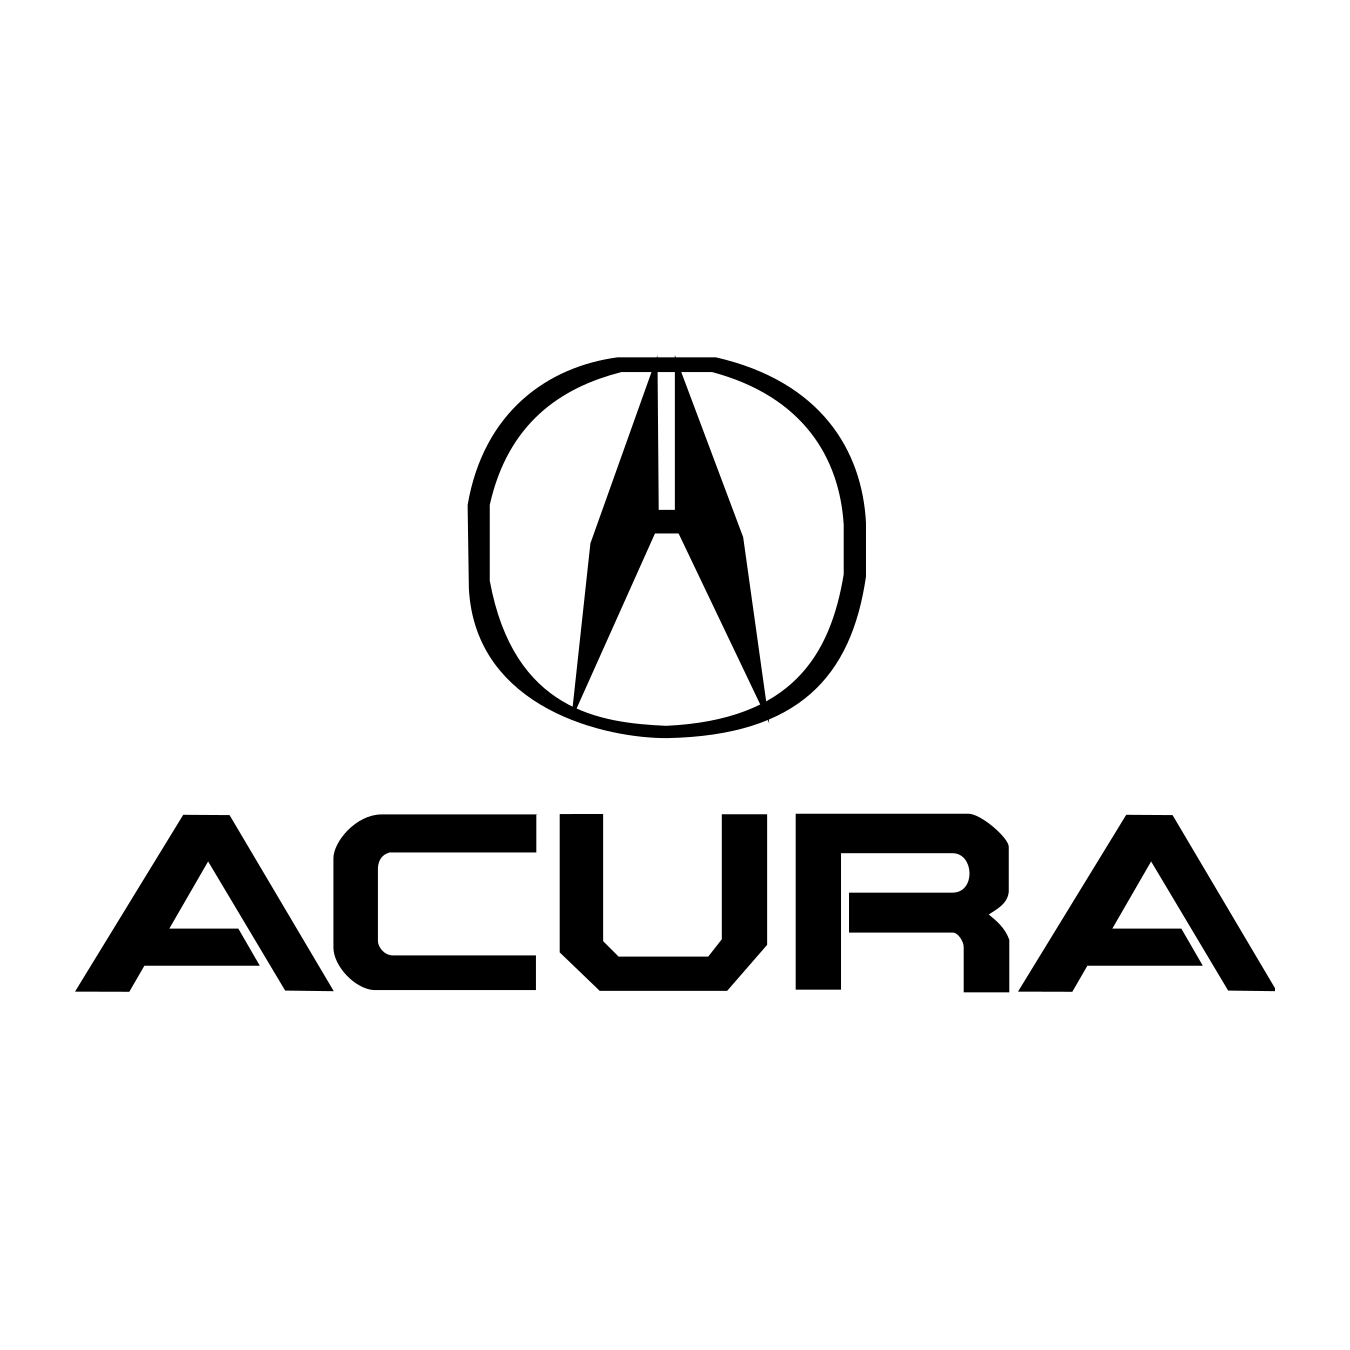 Acura Dealer Associations